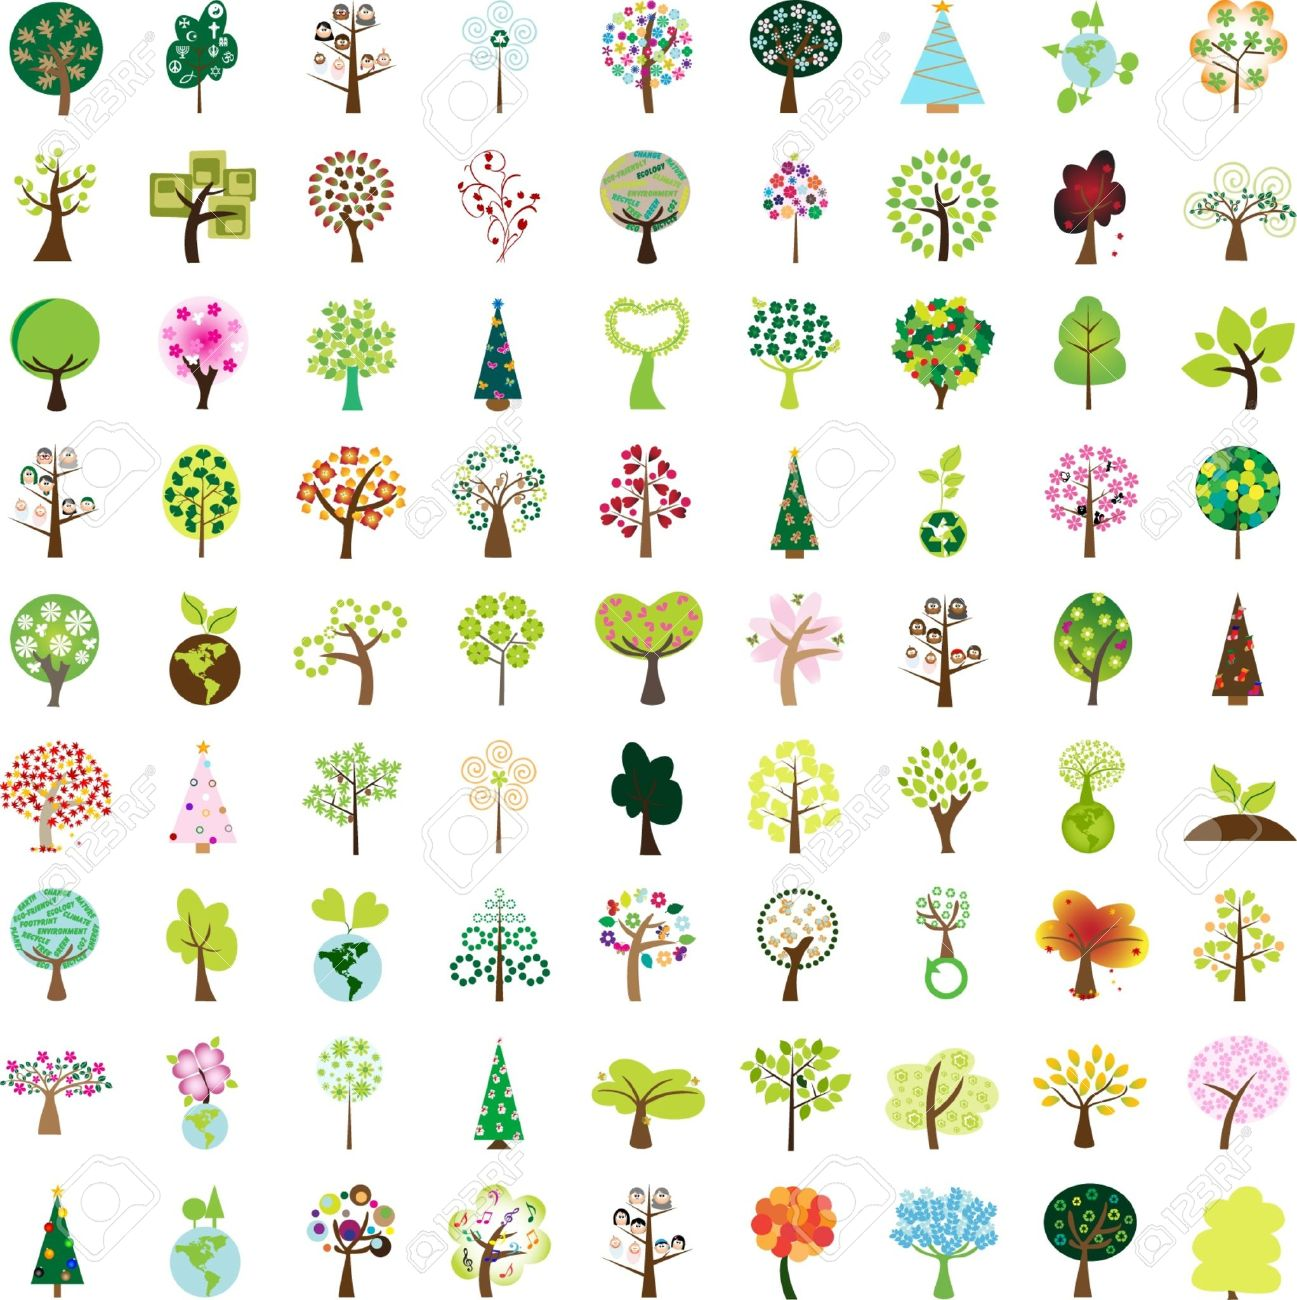 One hundred tree graphic design elements for icons and logos - Part 1 (vector) Stock Vector - 11645568